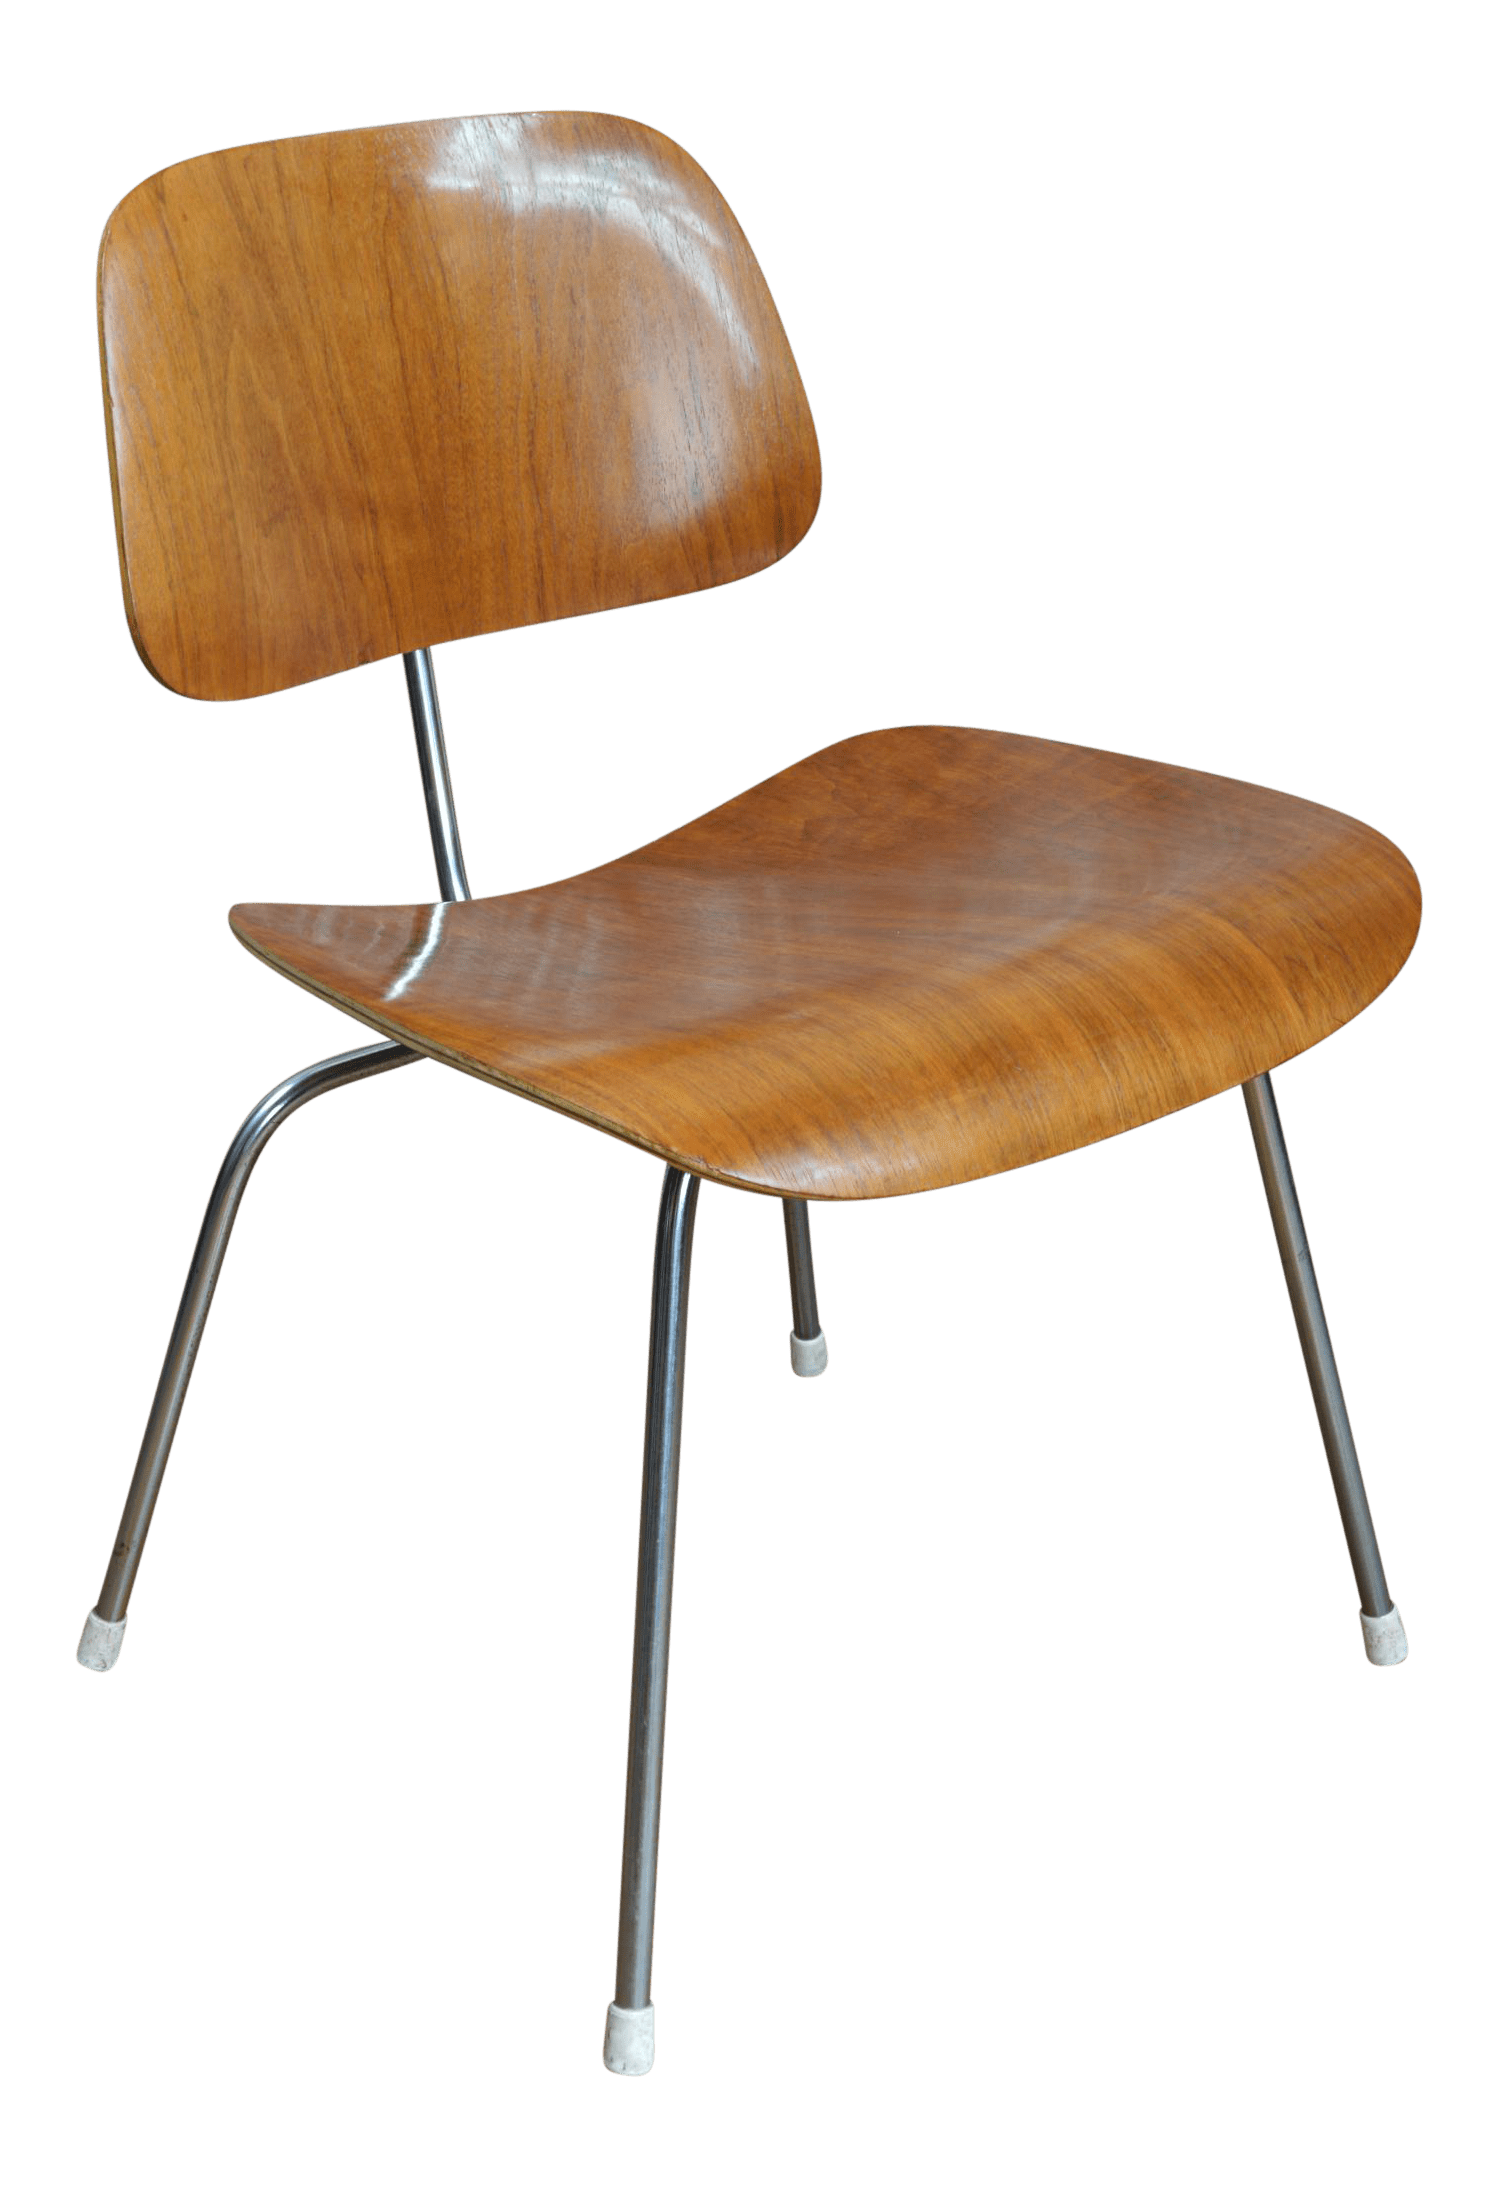 Eames Plywood Chair Vintage Mid 20th Century Eames Dcm Molded Plywood And Chrome Chair